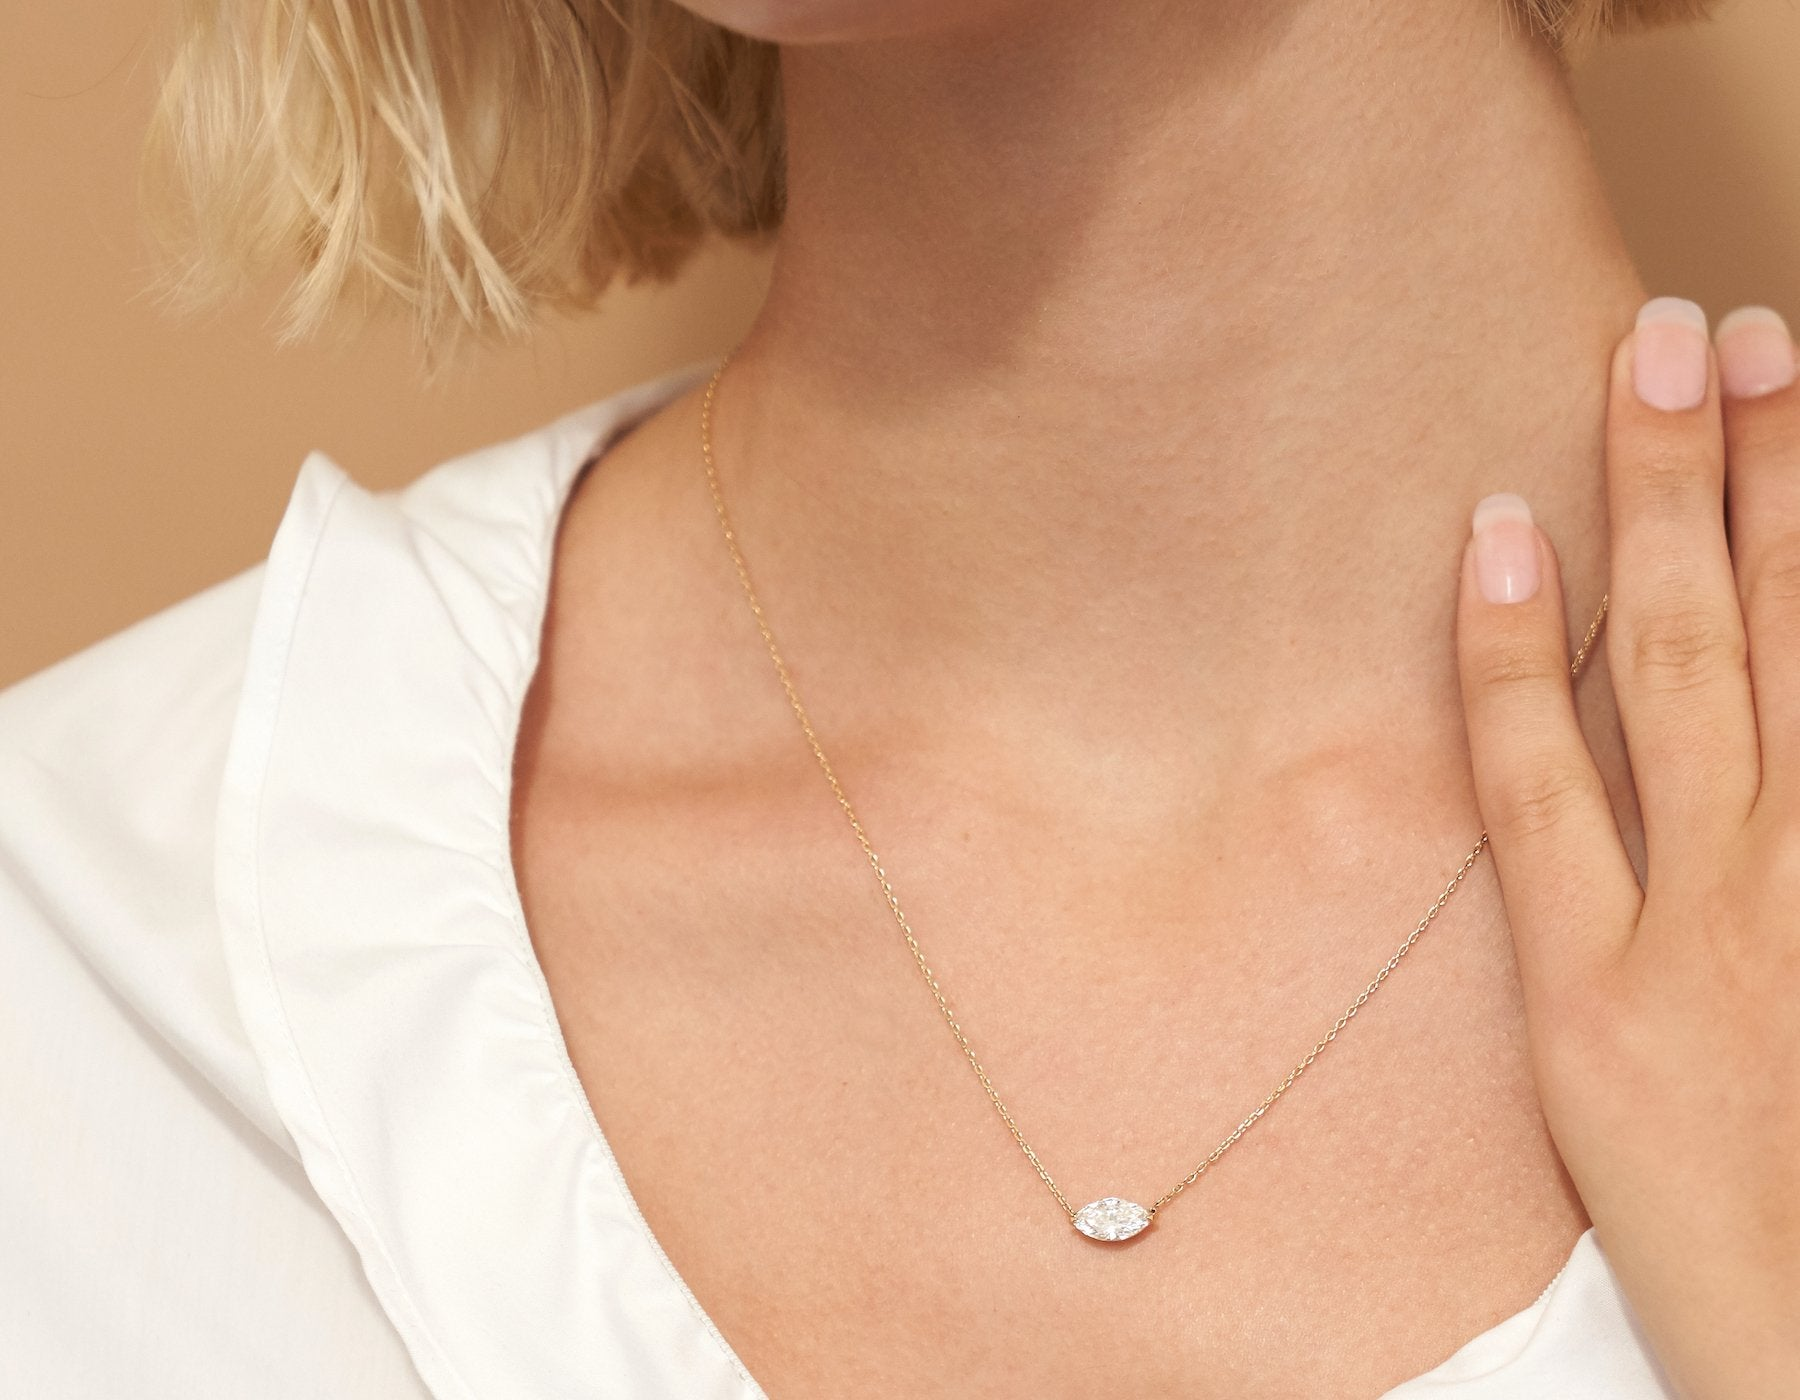 Model wearing Vrai 14K solid gold solitaire marquise diamond necklace 1ct minimalist delicate, 14K Yellow Gold